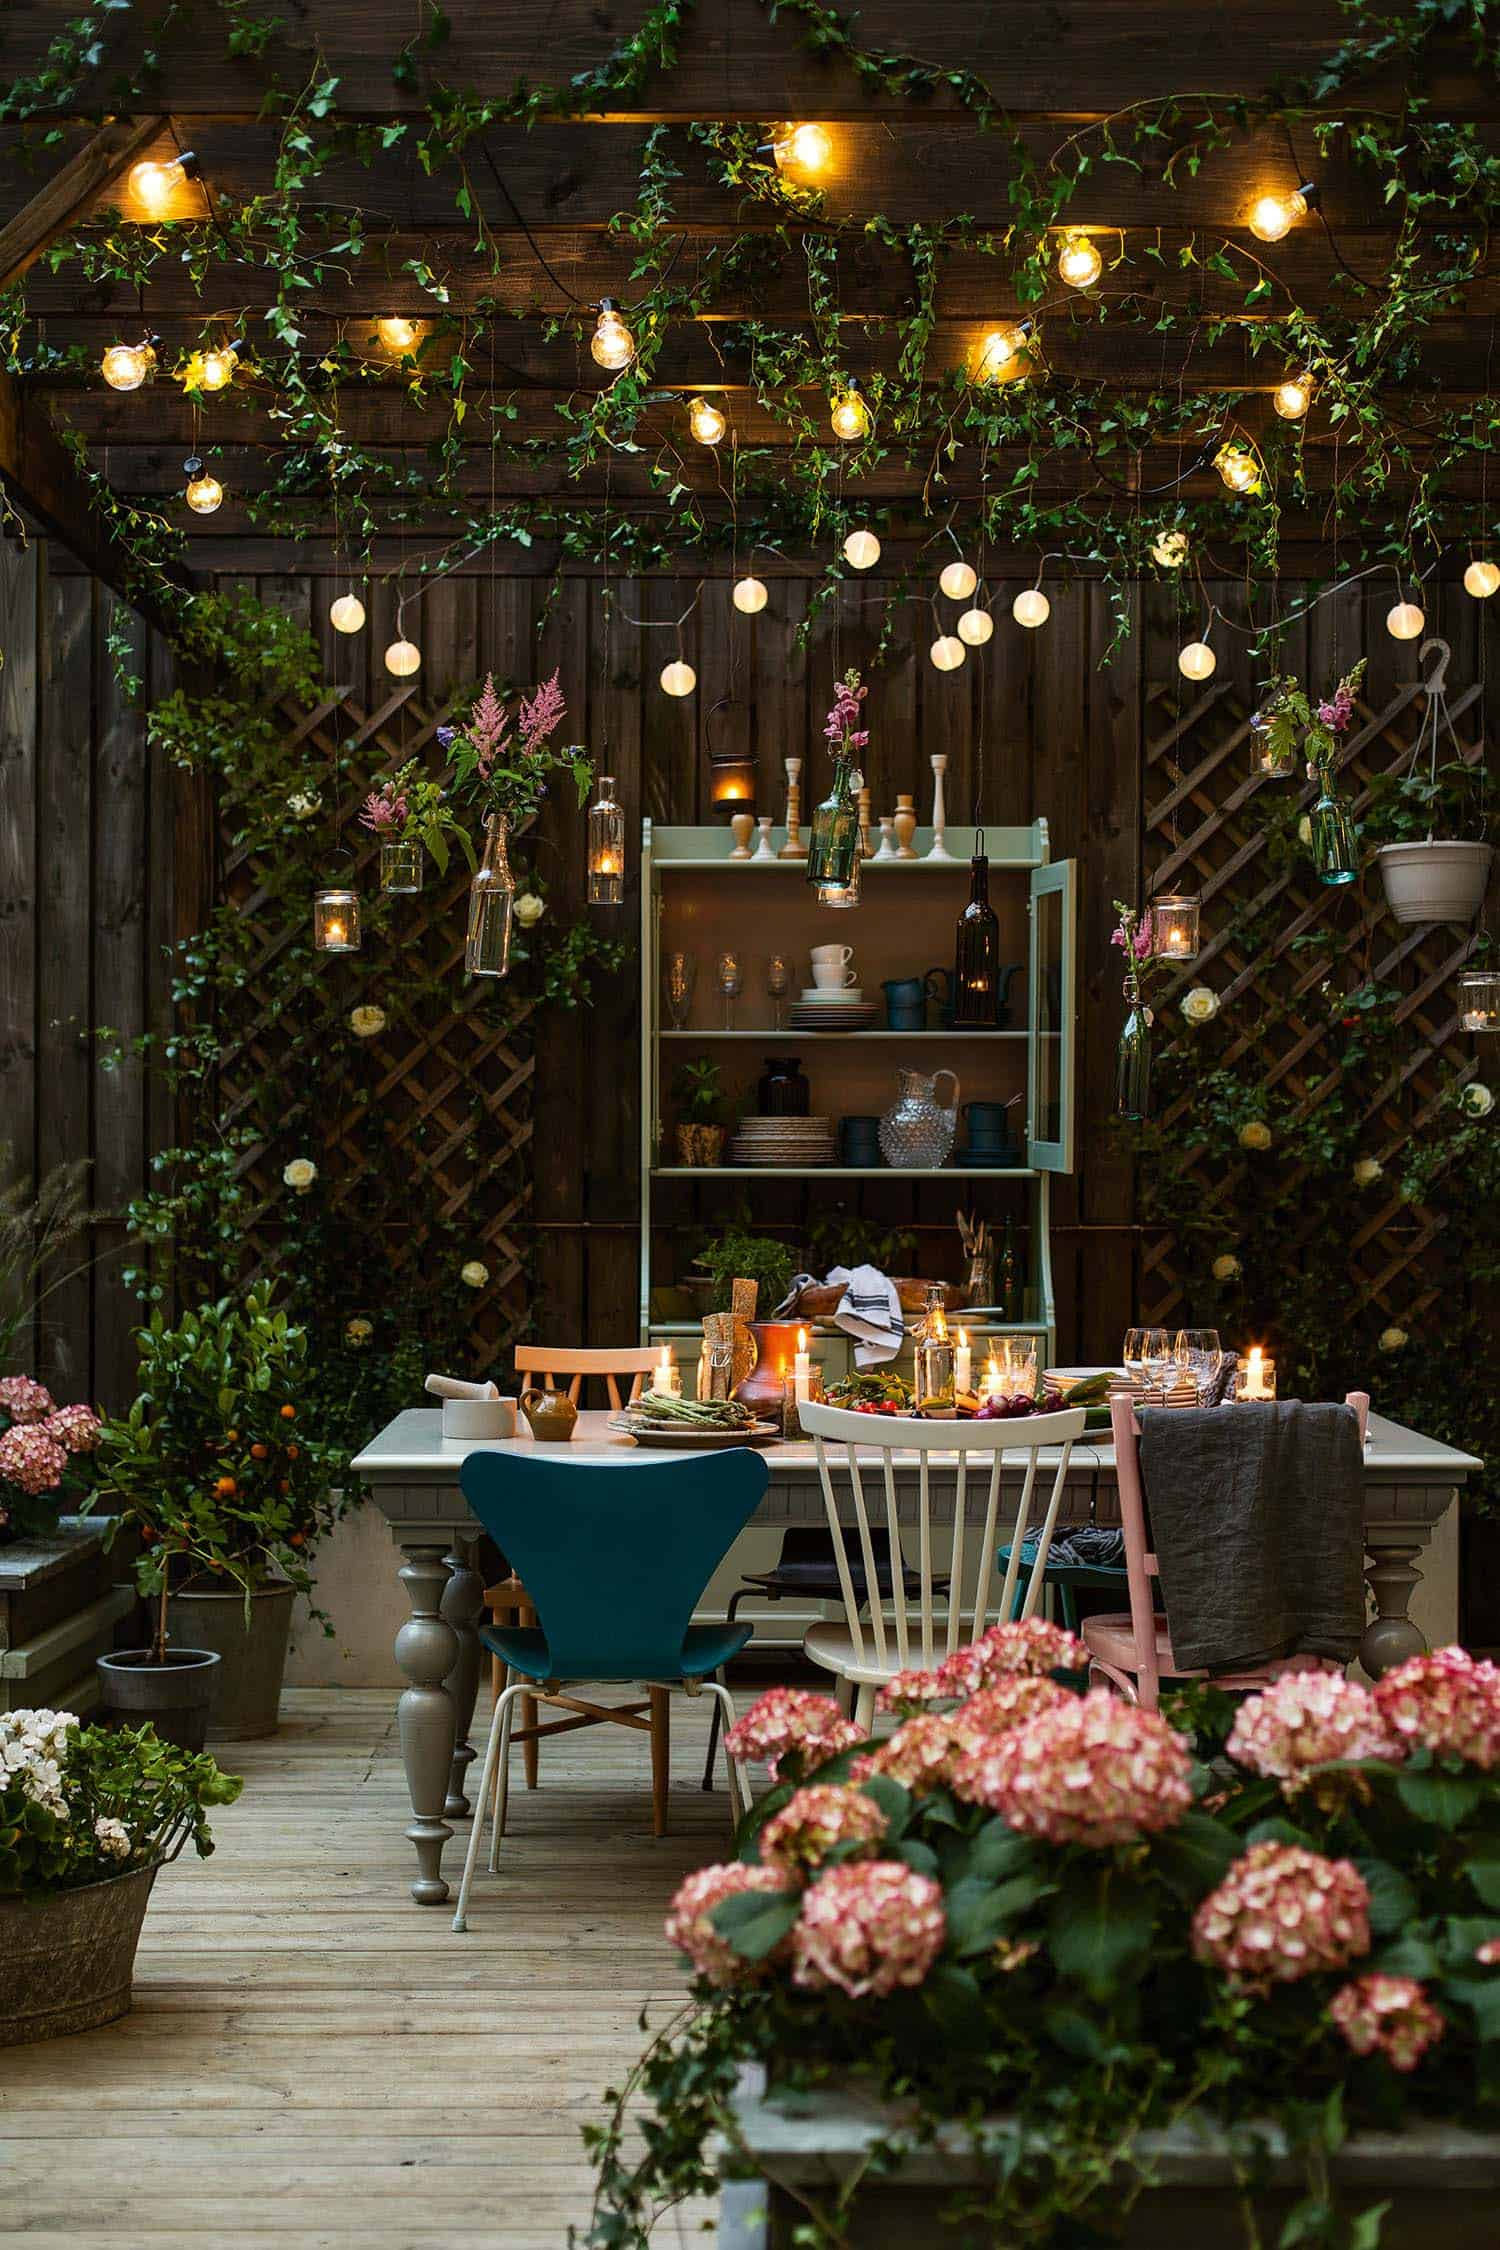 bohemian garden design ideas 01 1 kindesign - Garden Design Ideas